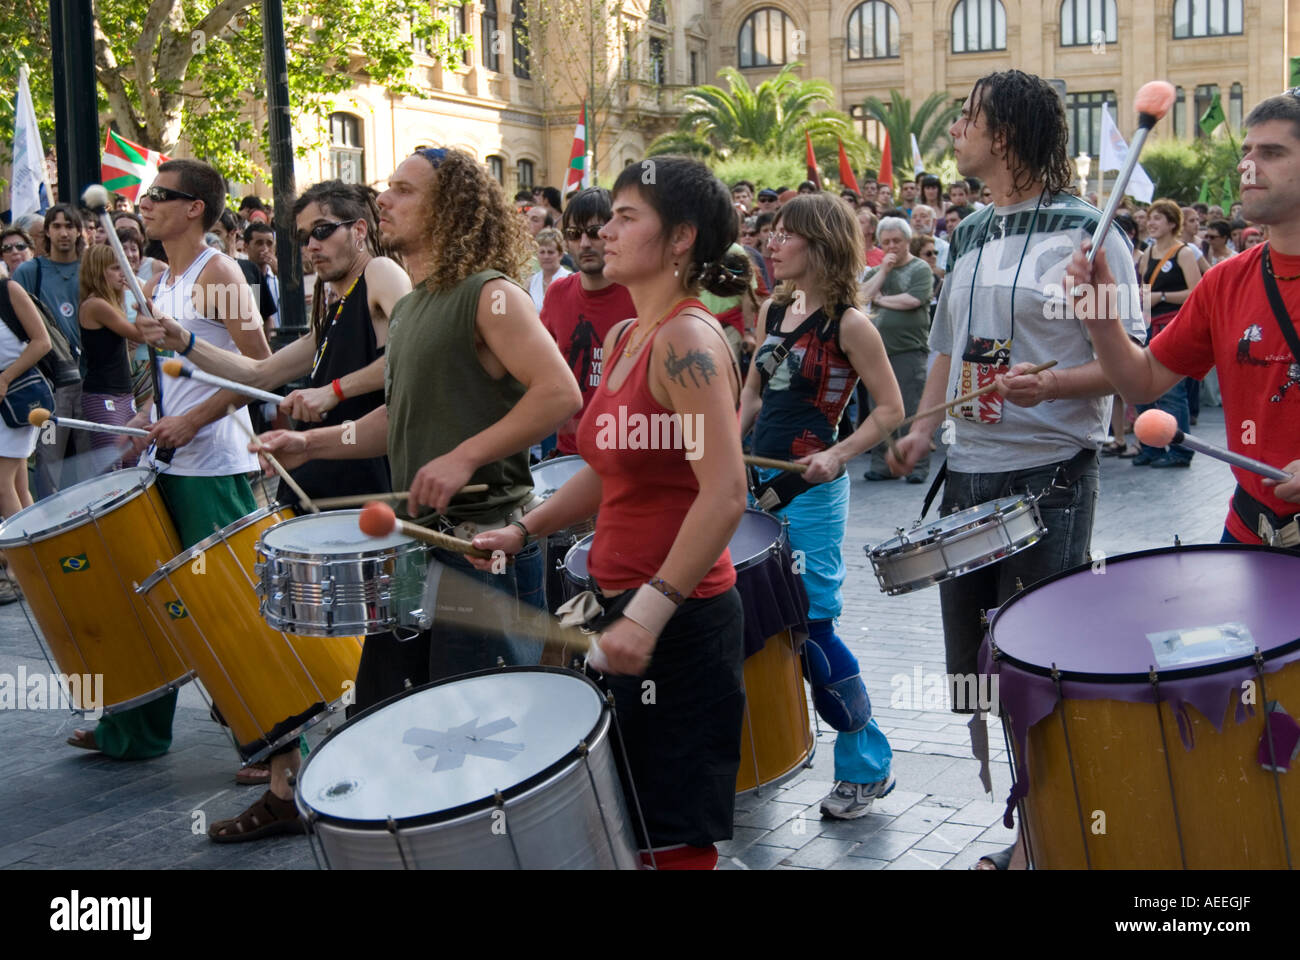 Drummers and percussionists banging drums and making noise at a demonstration, San Sebastian, Spain - Stock Image